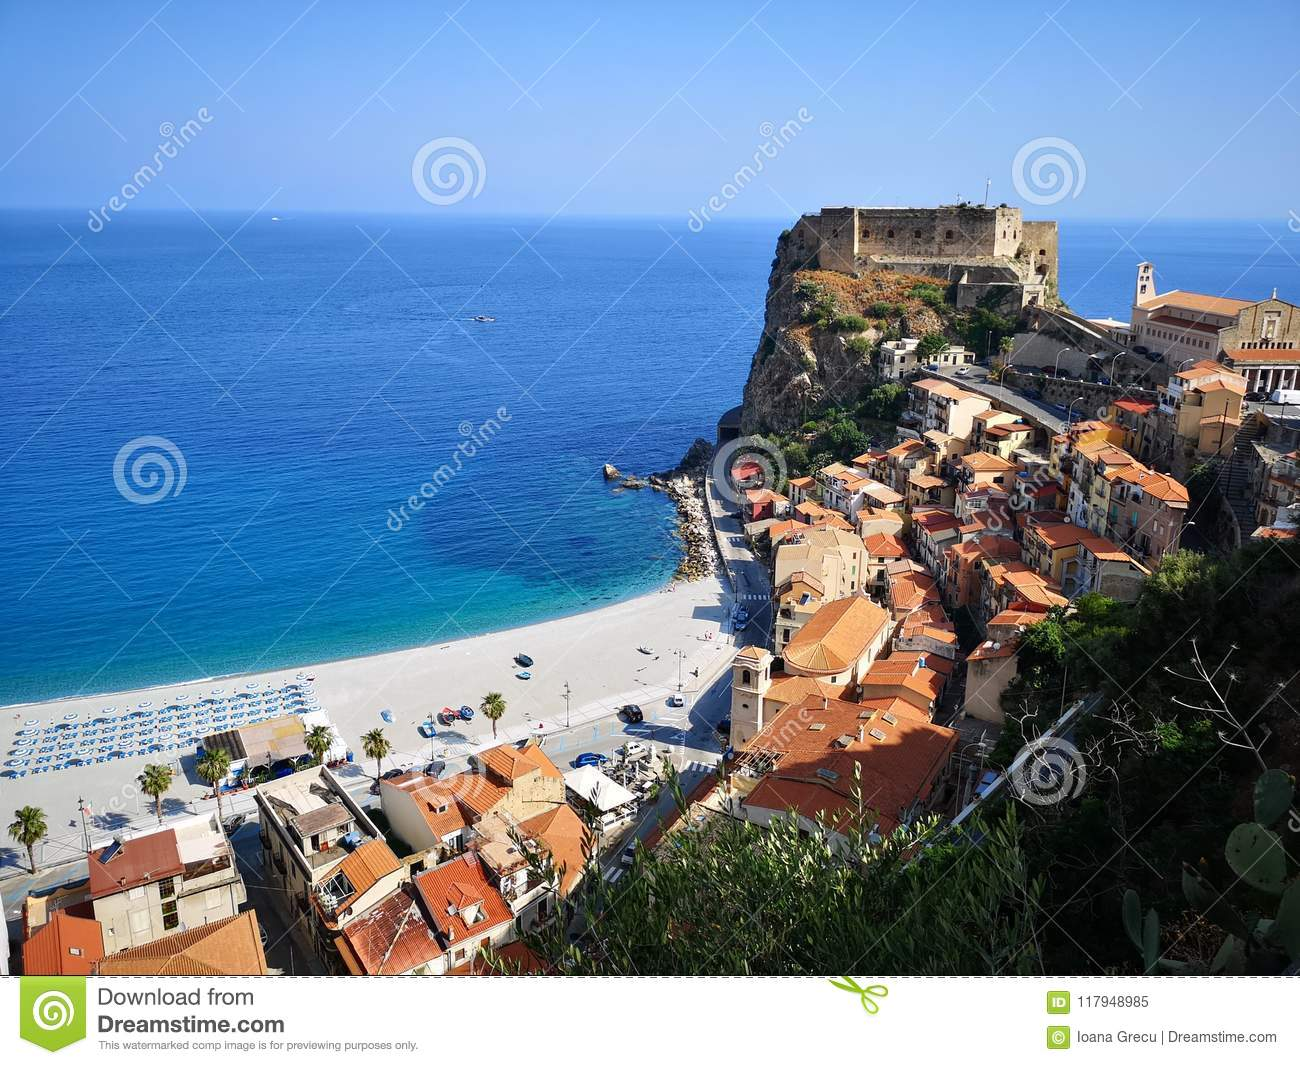 Historical town of Scilla, Italy